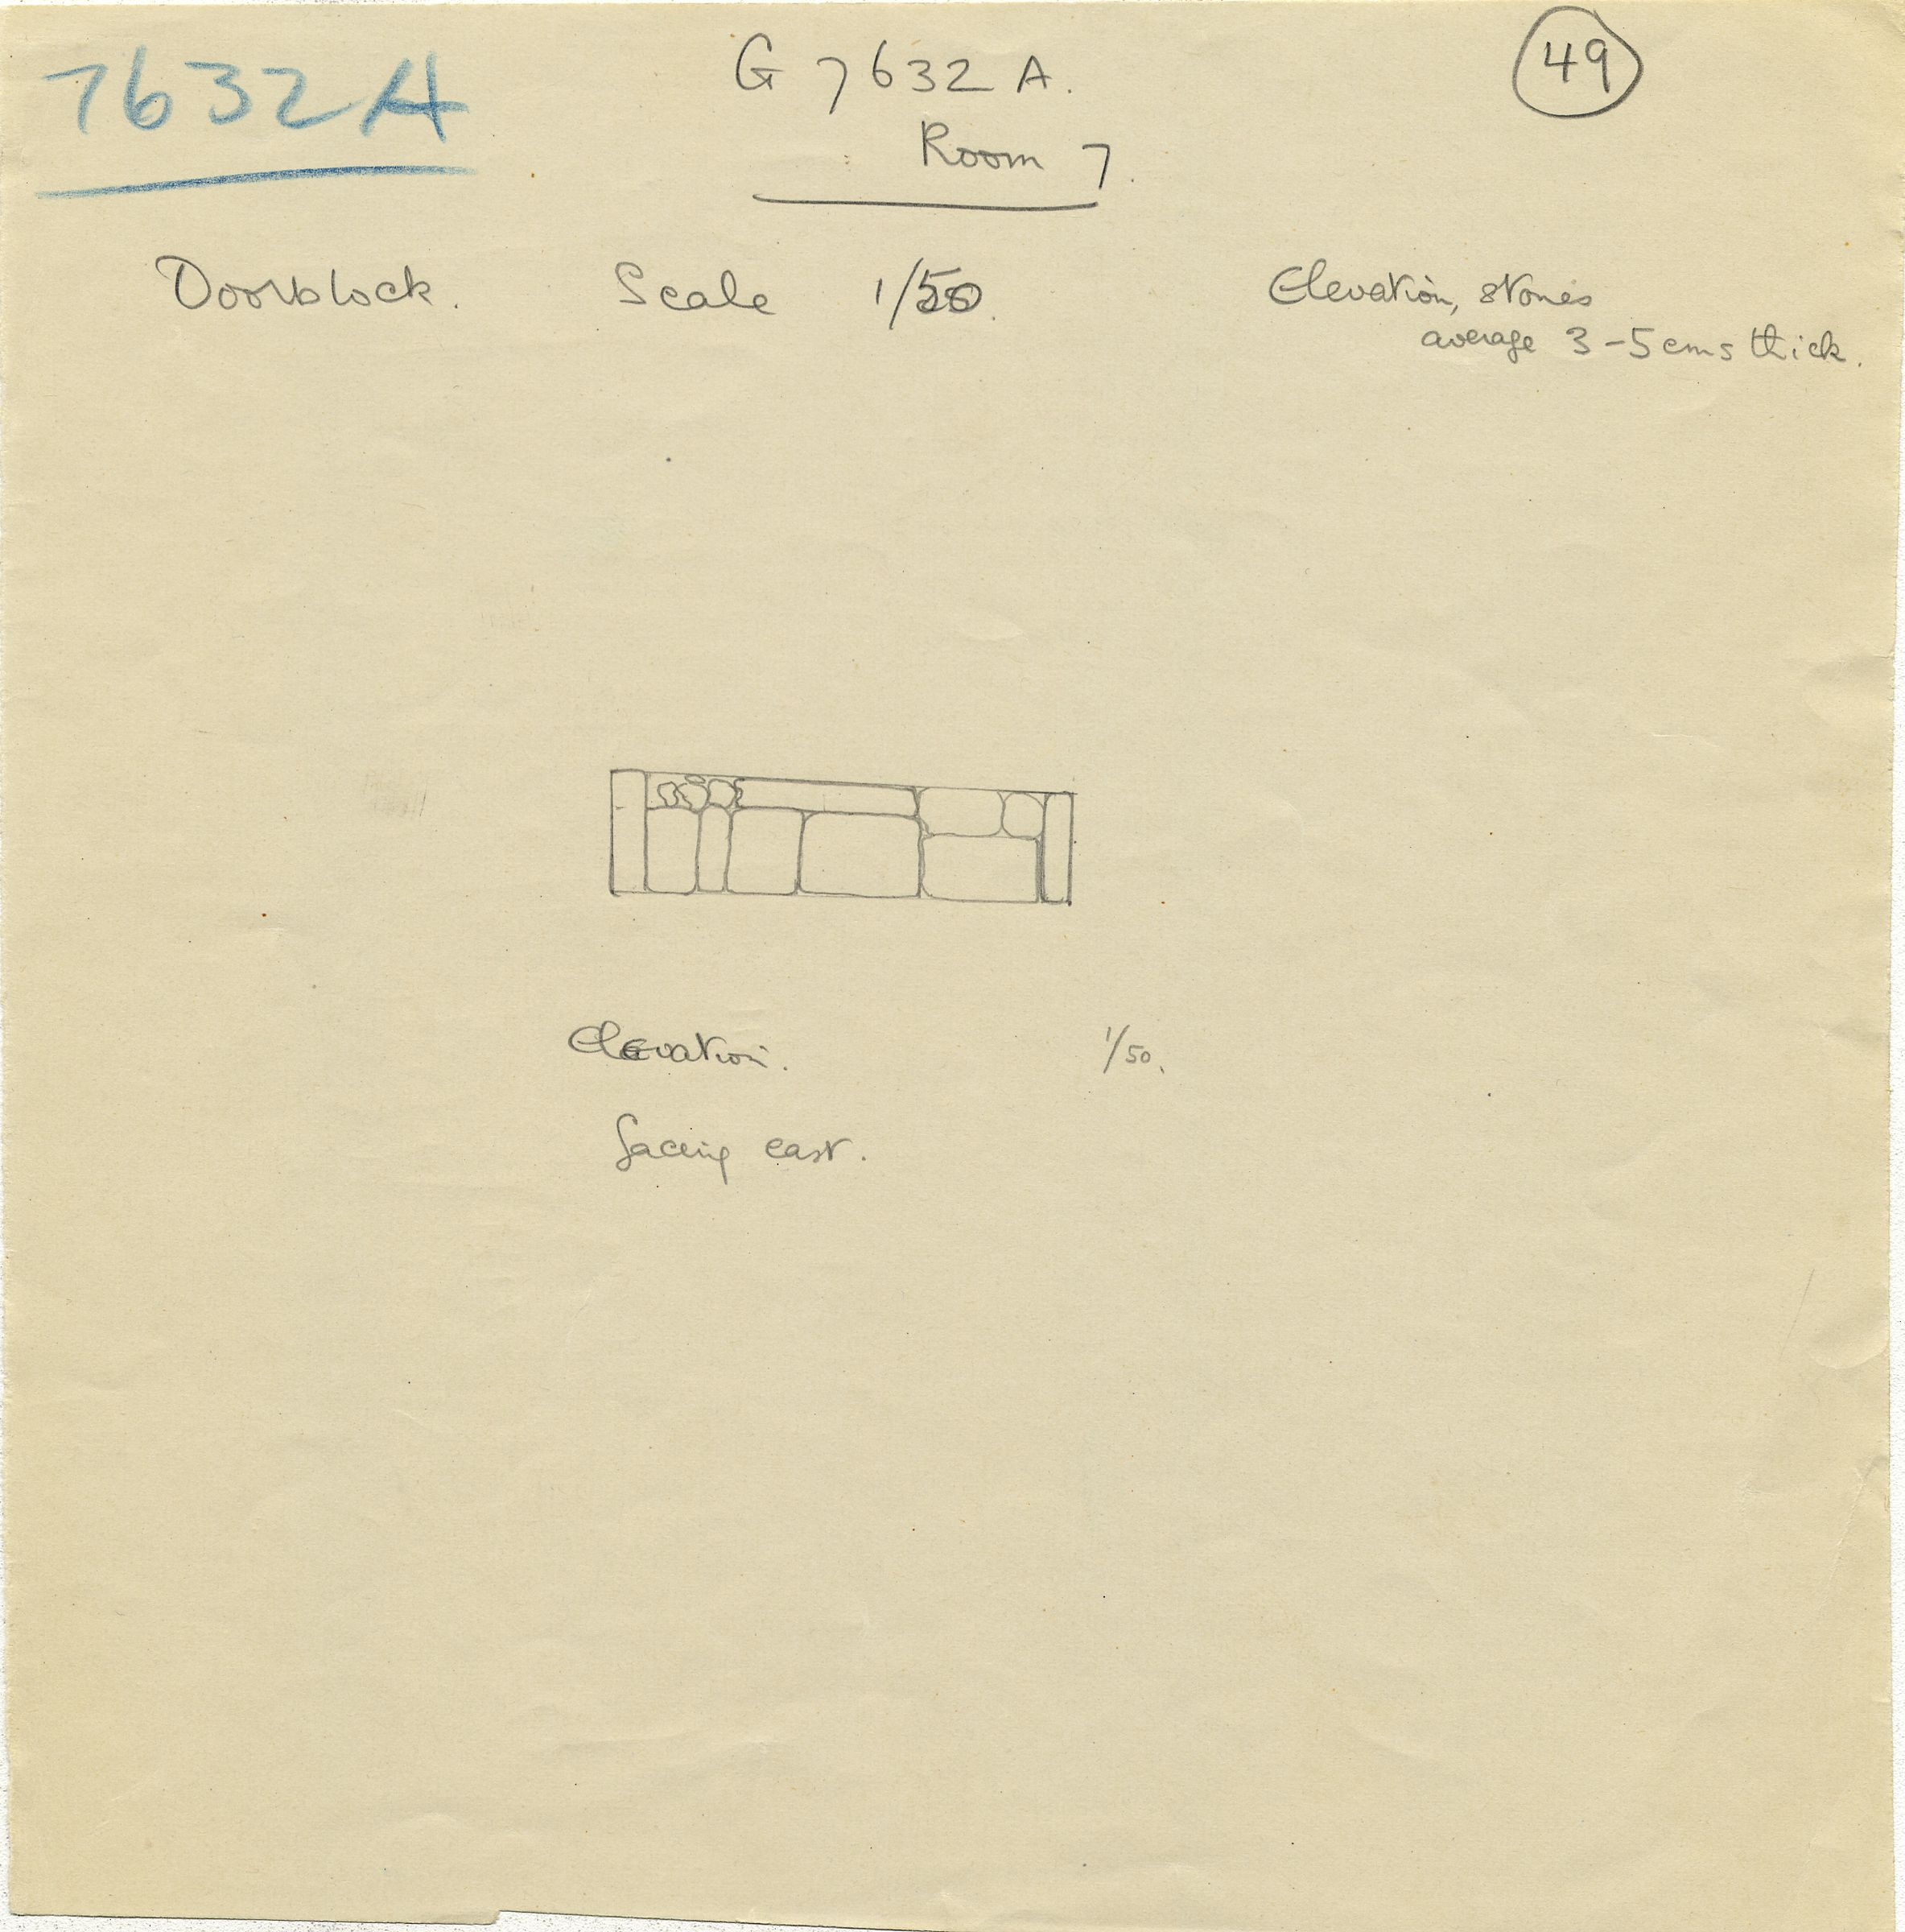 Maps and plans: G 7632, Shaft A